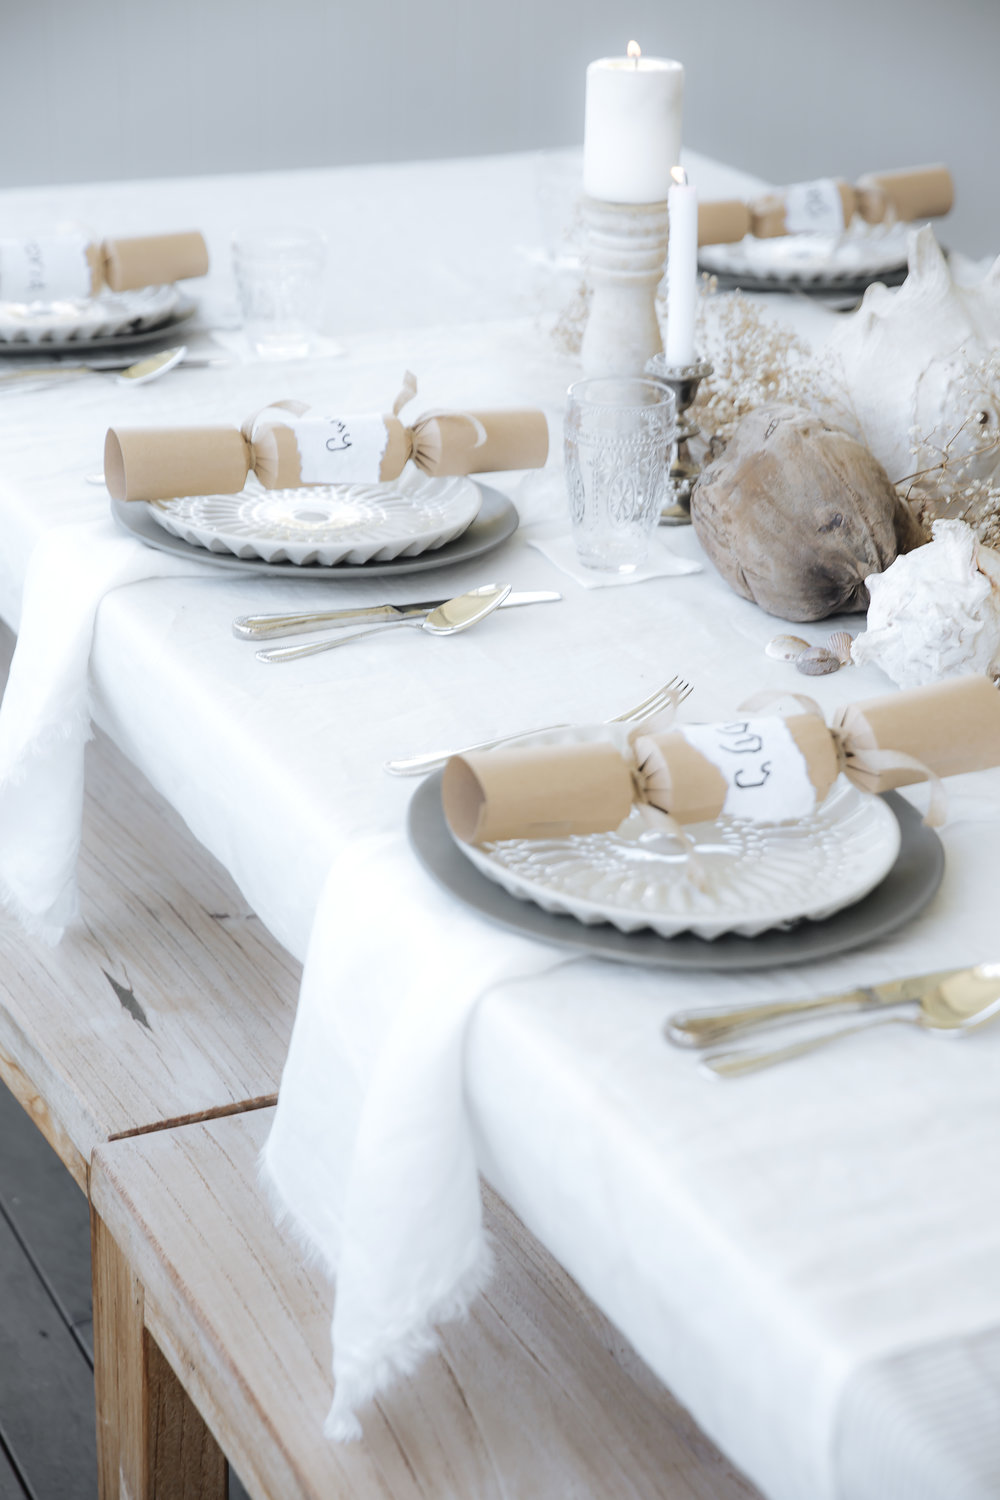 Linen Tablecloth in White, $89.00.Linen Napkins 4 pack in white, $49.00.